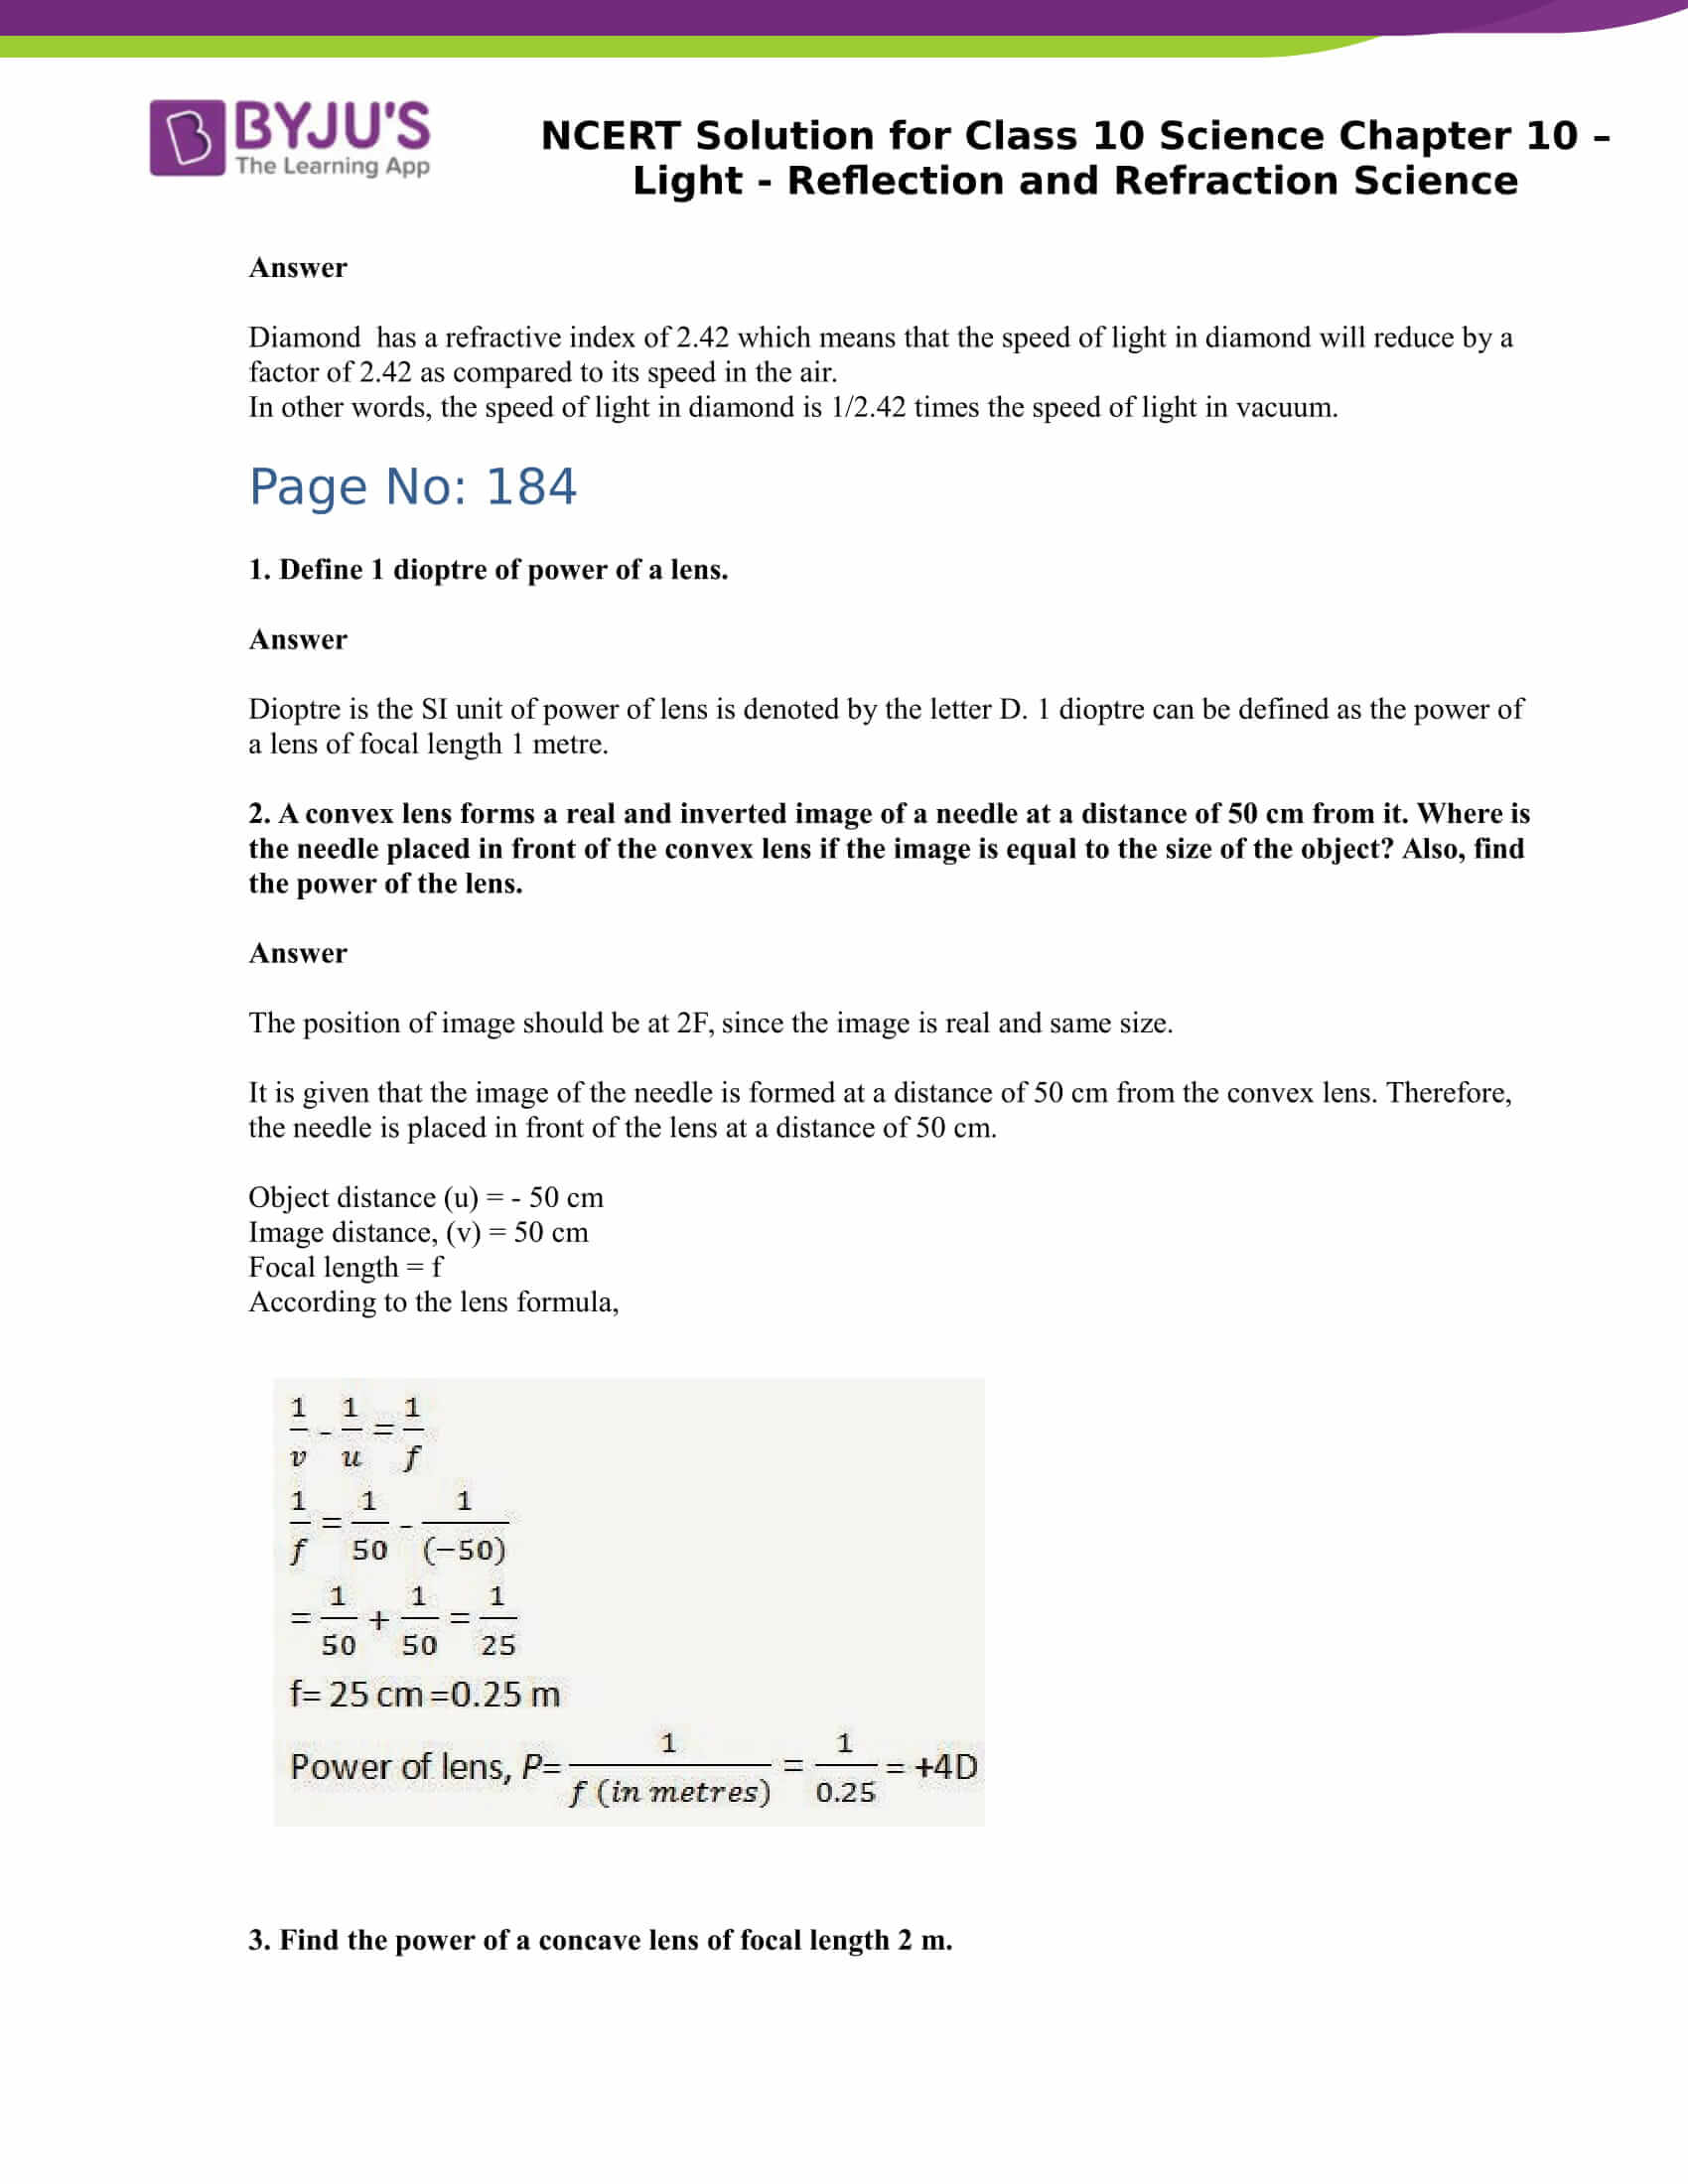 NCERT Solution for CBSE Class 10 Science Chapter 10 Light Reflection and Refraction Science Part 5